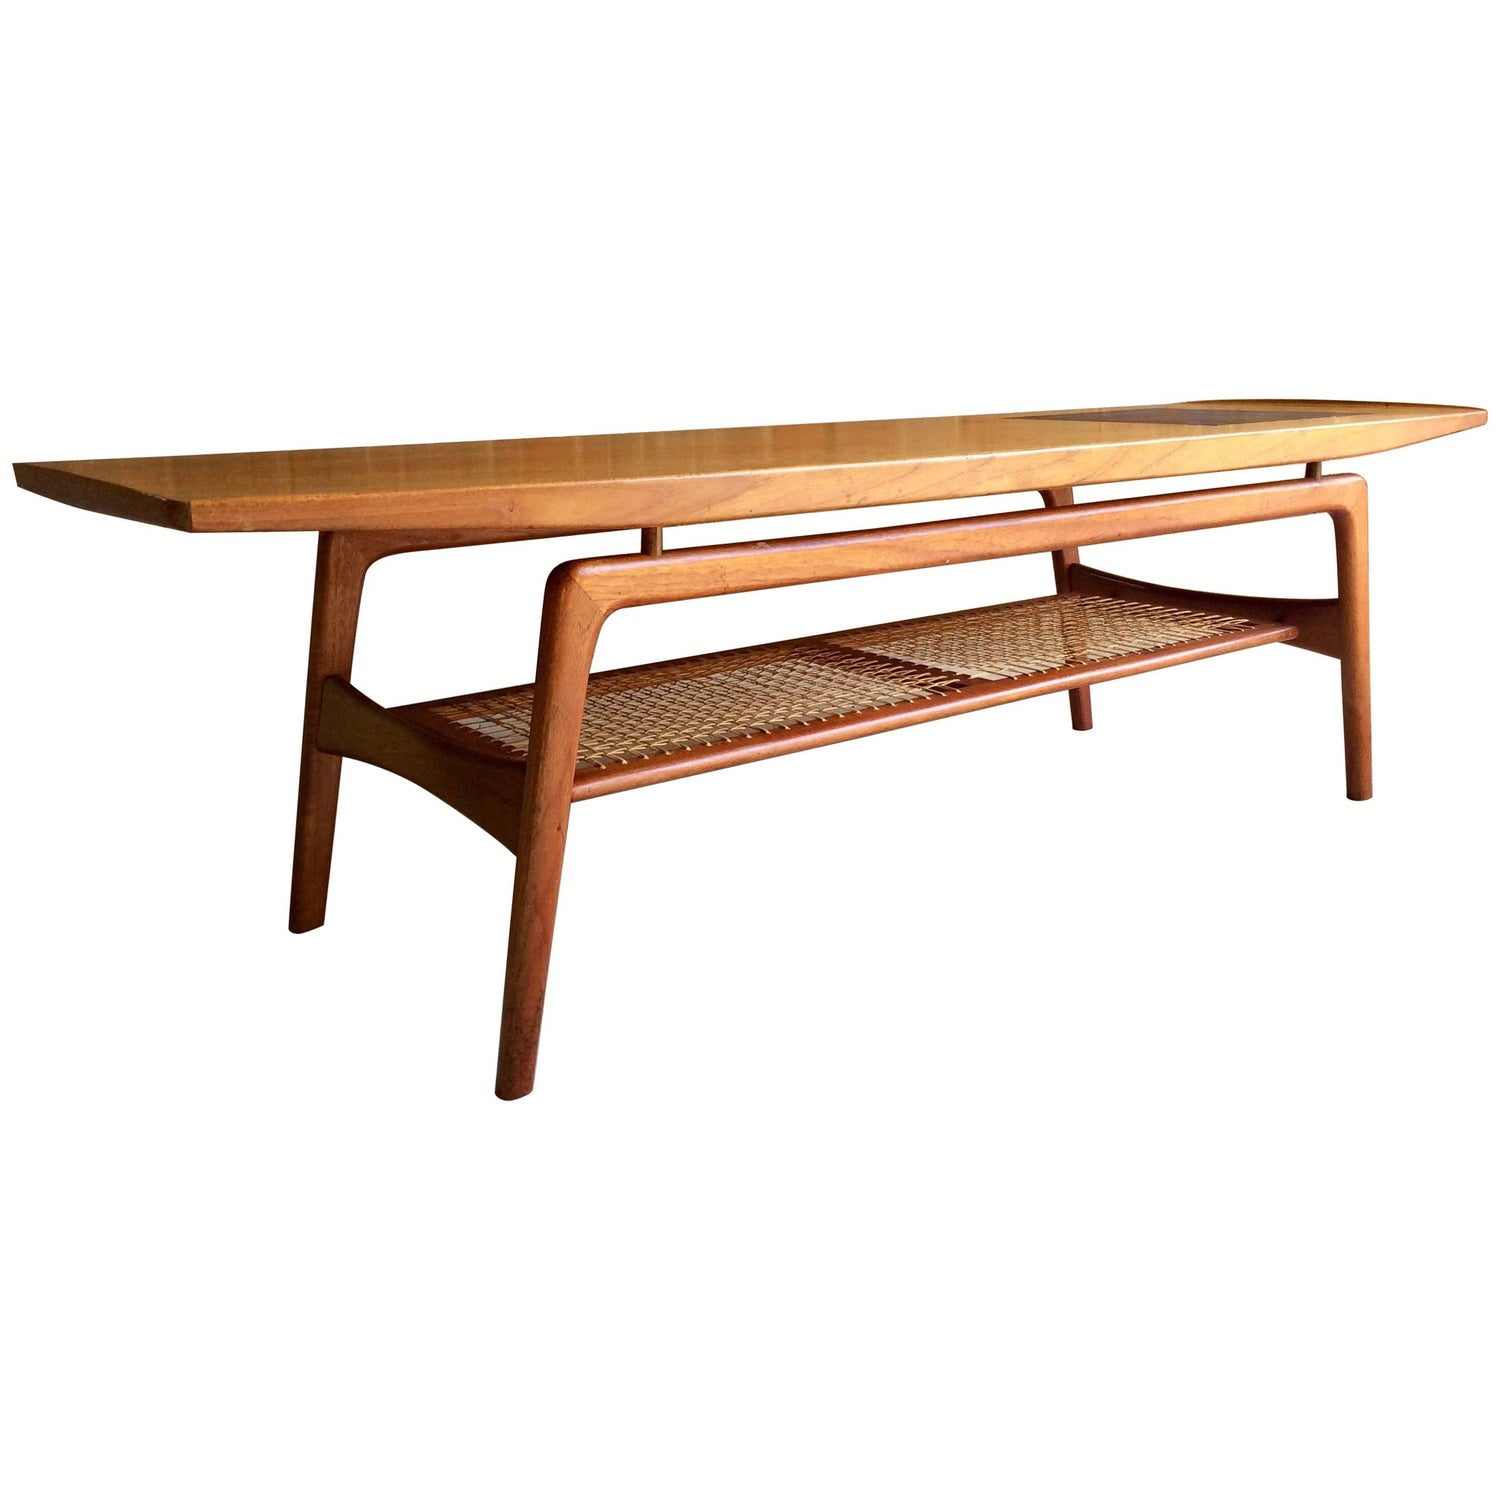 Danish Modern Teak and Mosaic Tile Coffee Table by Arne Hovmand